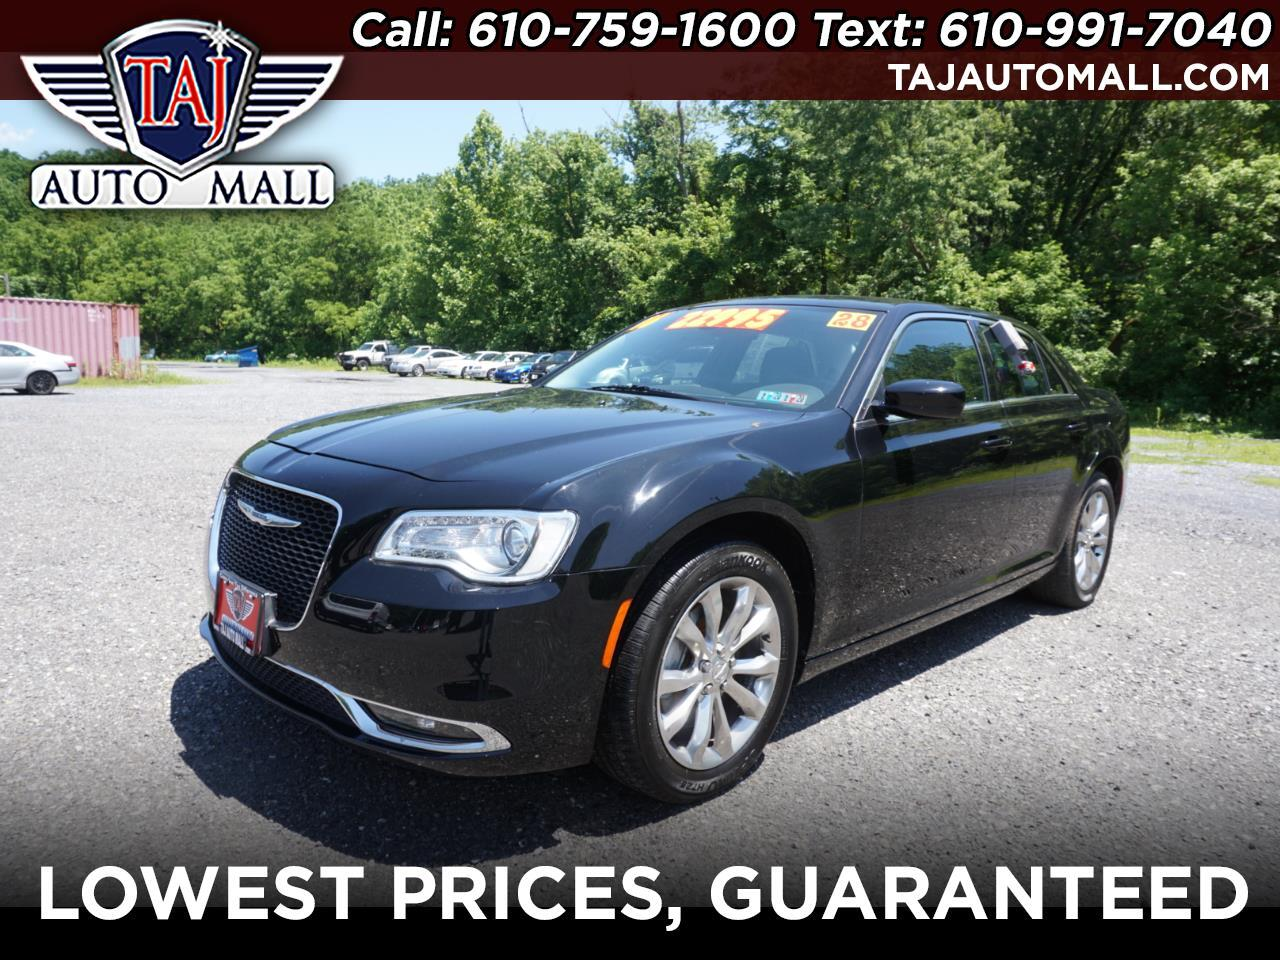 2016 Chrysler 300 4dr Sdn Limited AWD